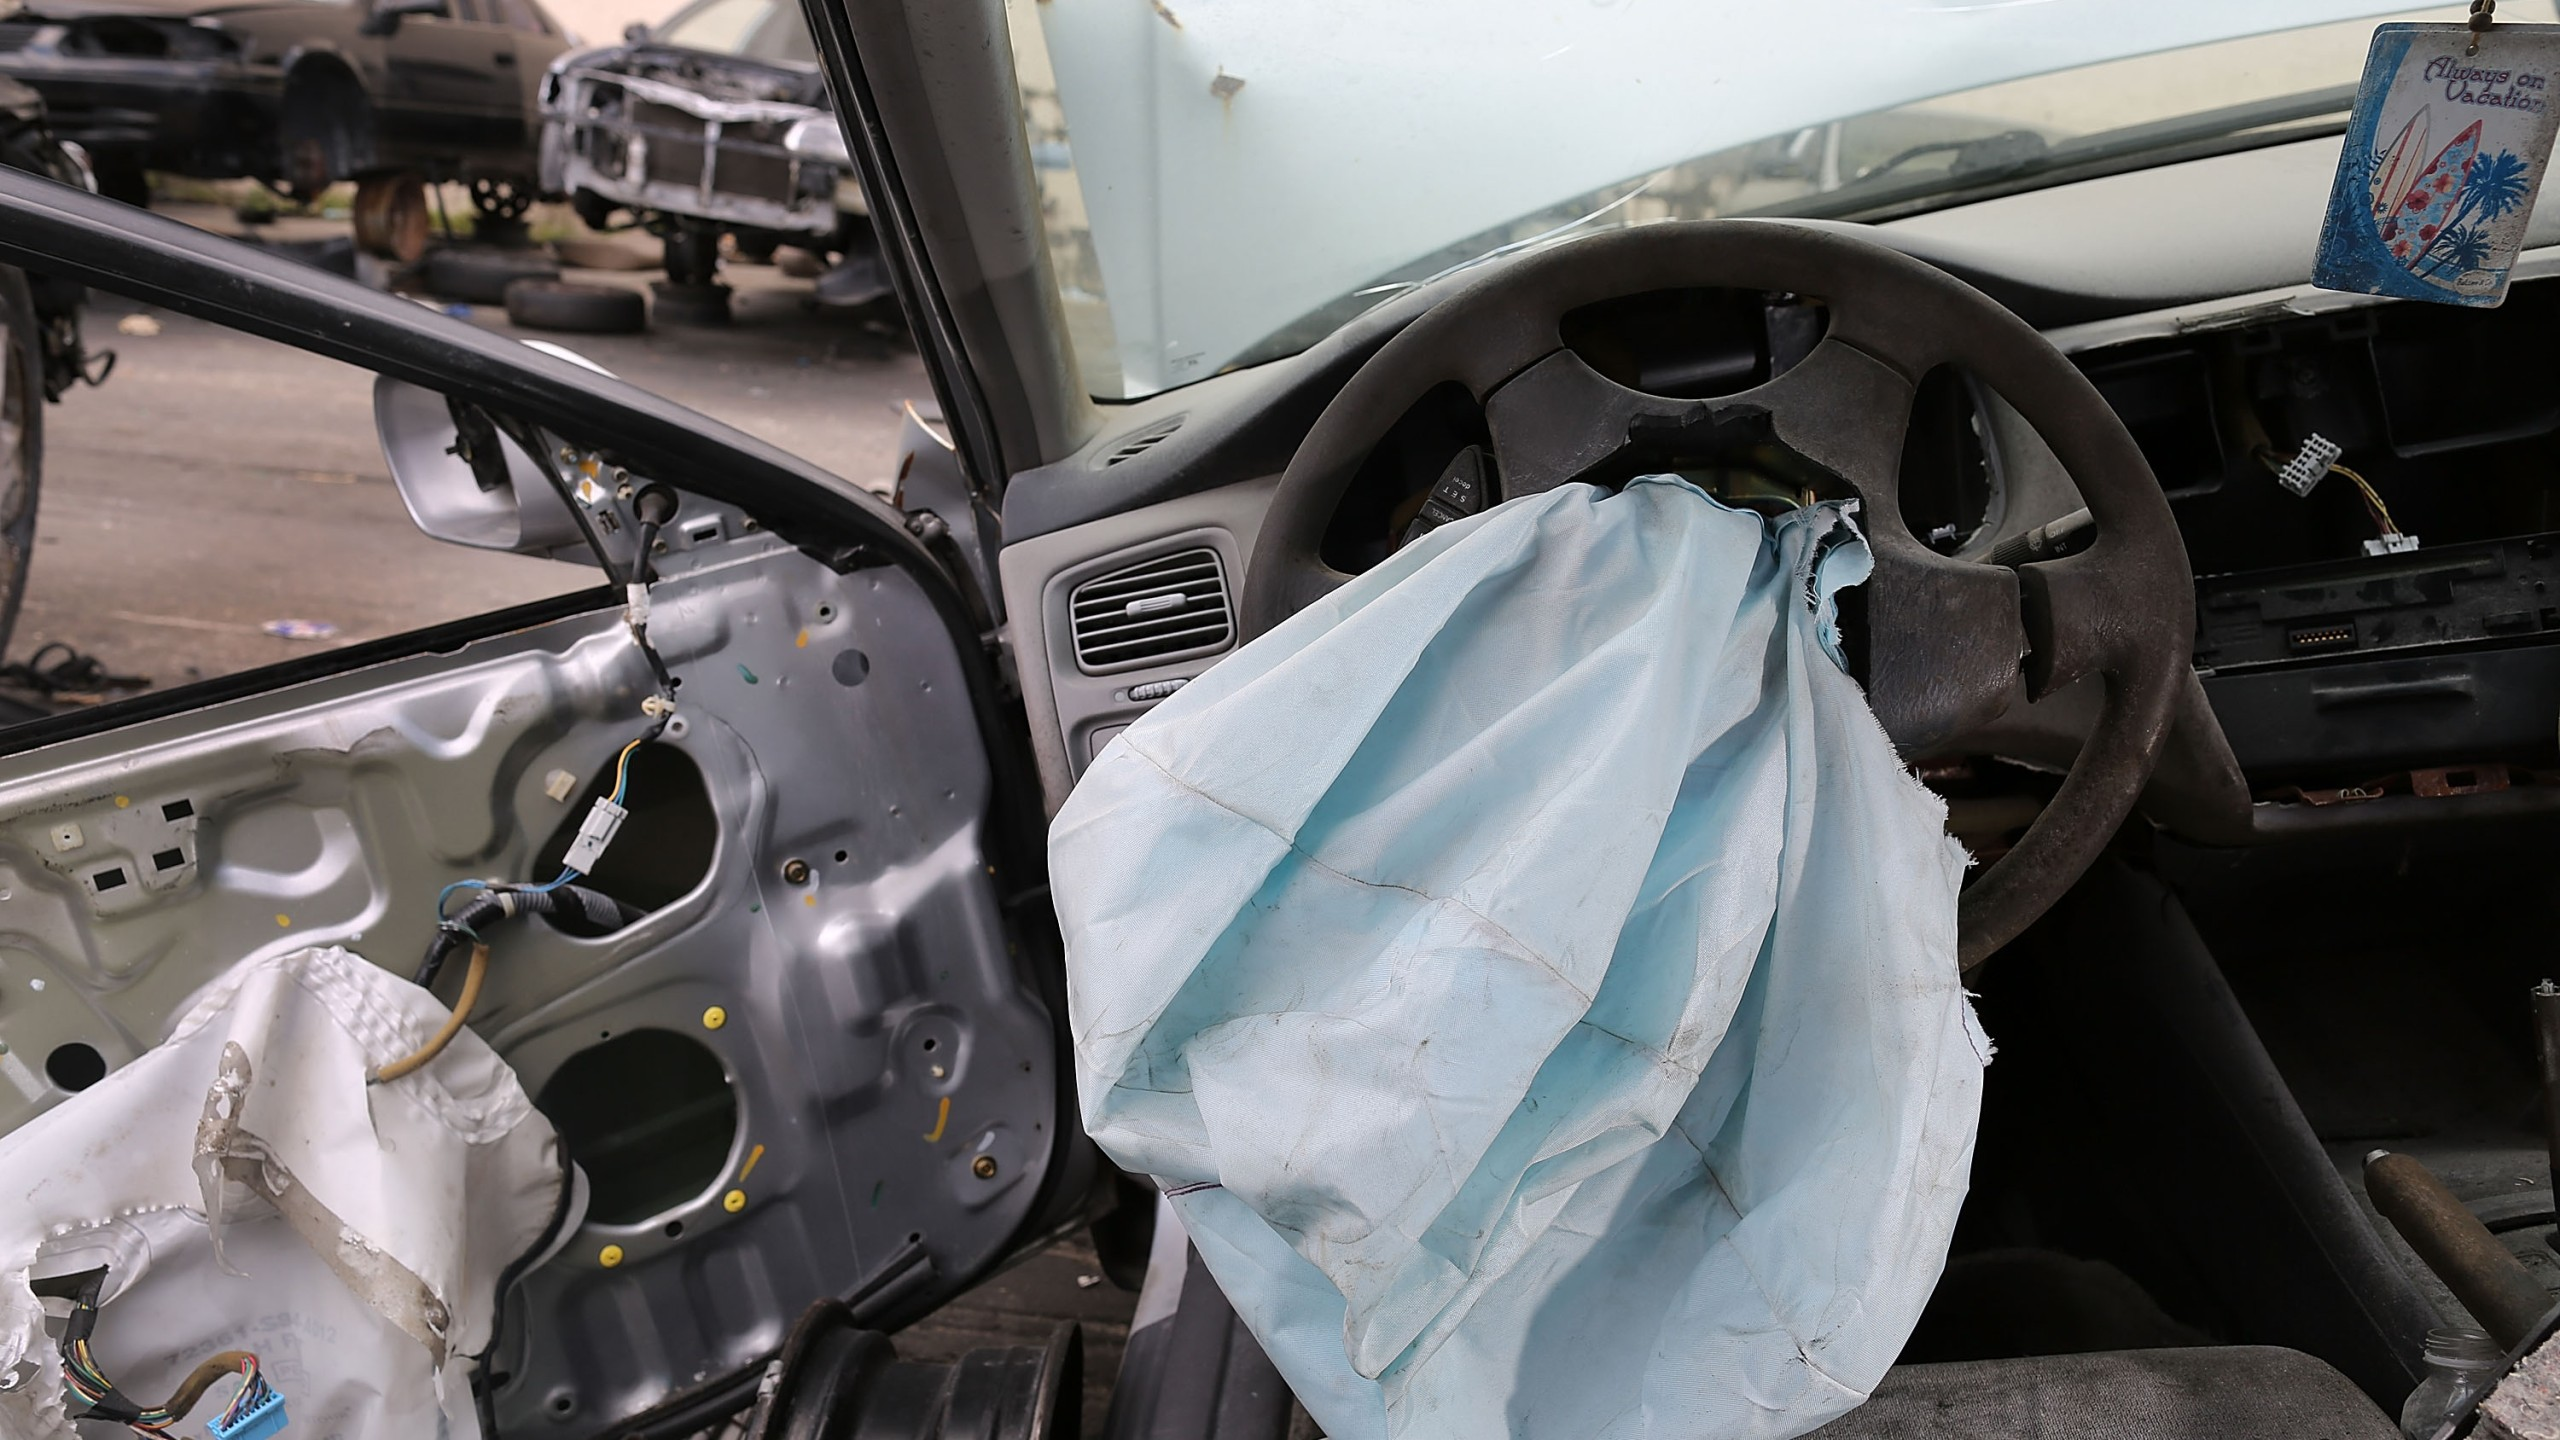 A deployed airbag is seen in a 2001 Honda Accord at the LKQ Pick Your Part salvage yard on May 22, 2015, in Medley, Florida.(Credit: Joe Raedle/Getty Images)